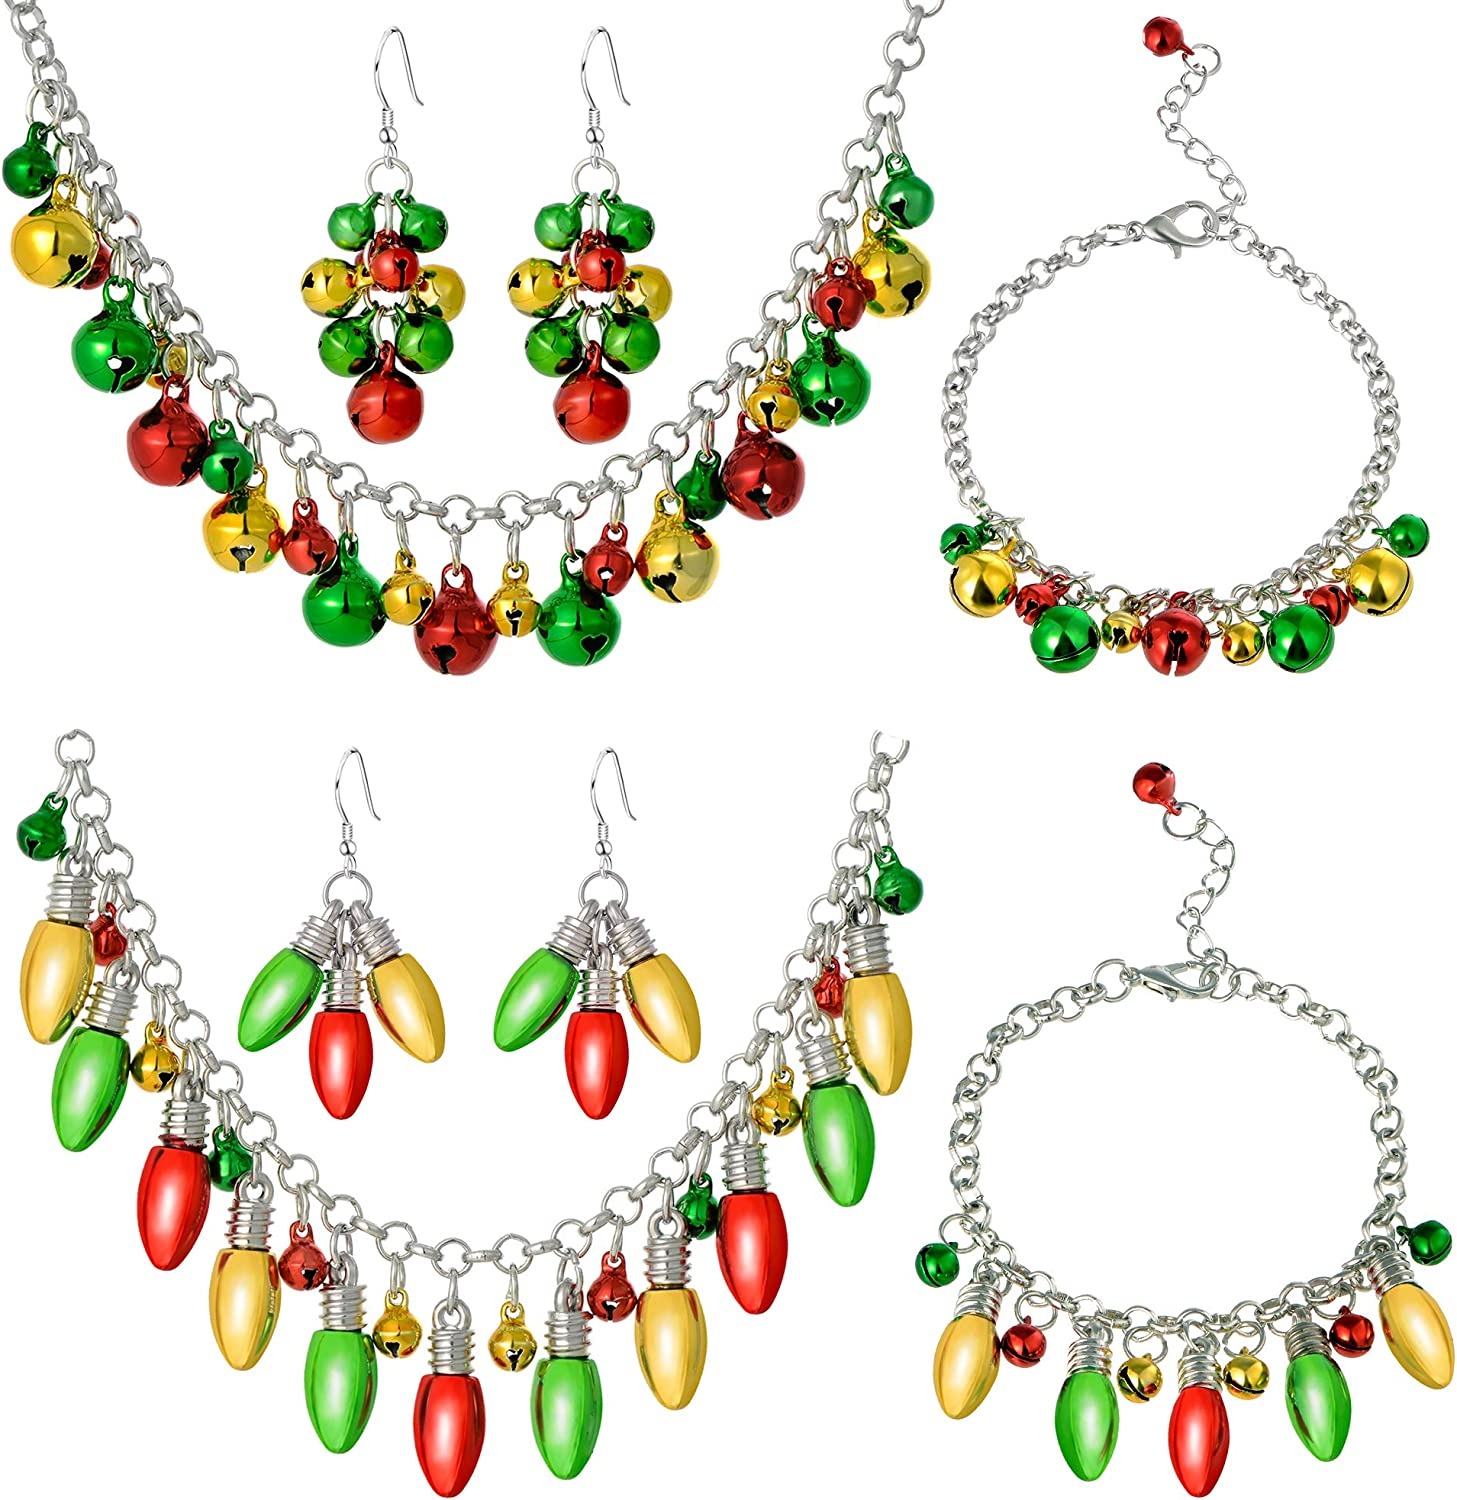 Cuicanstar 6 Pieces Christmas Jewelry Set Gift for Women Girls,Christmas Bulb Jingle Bell Holiday Necklace Chain Link Bracelet Drops Dangle Earrings Set.